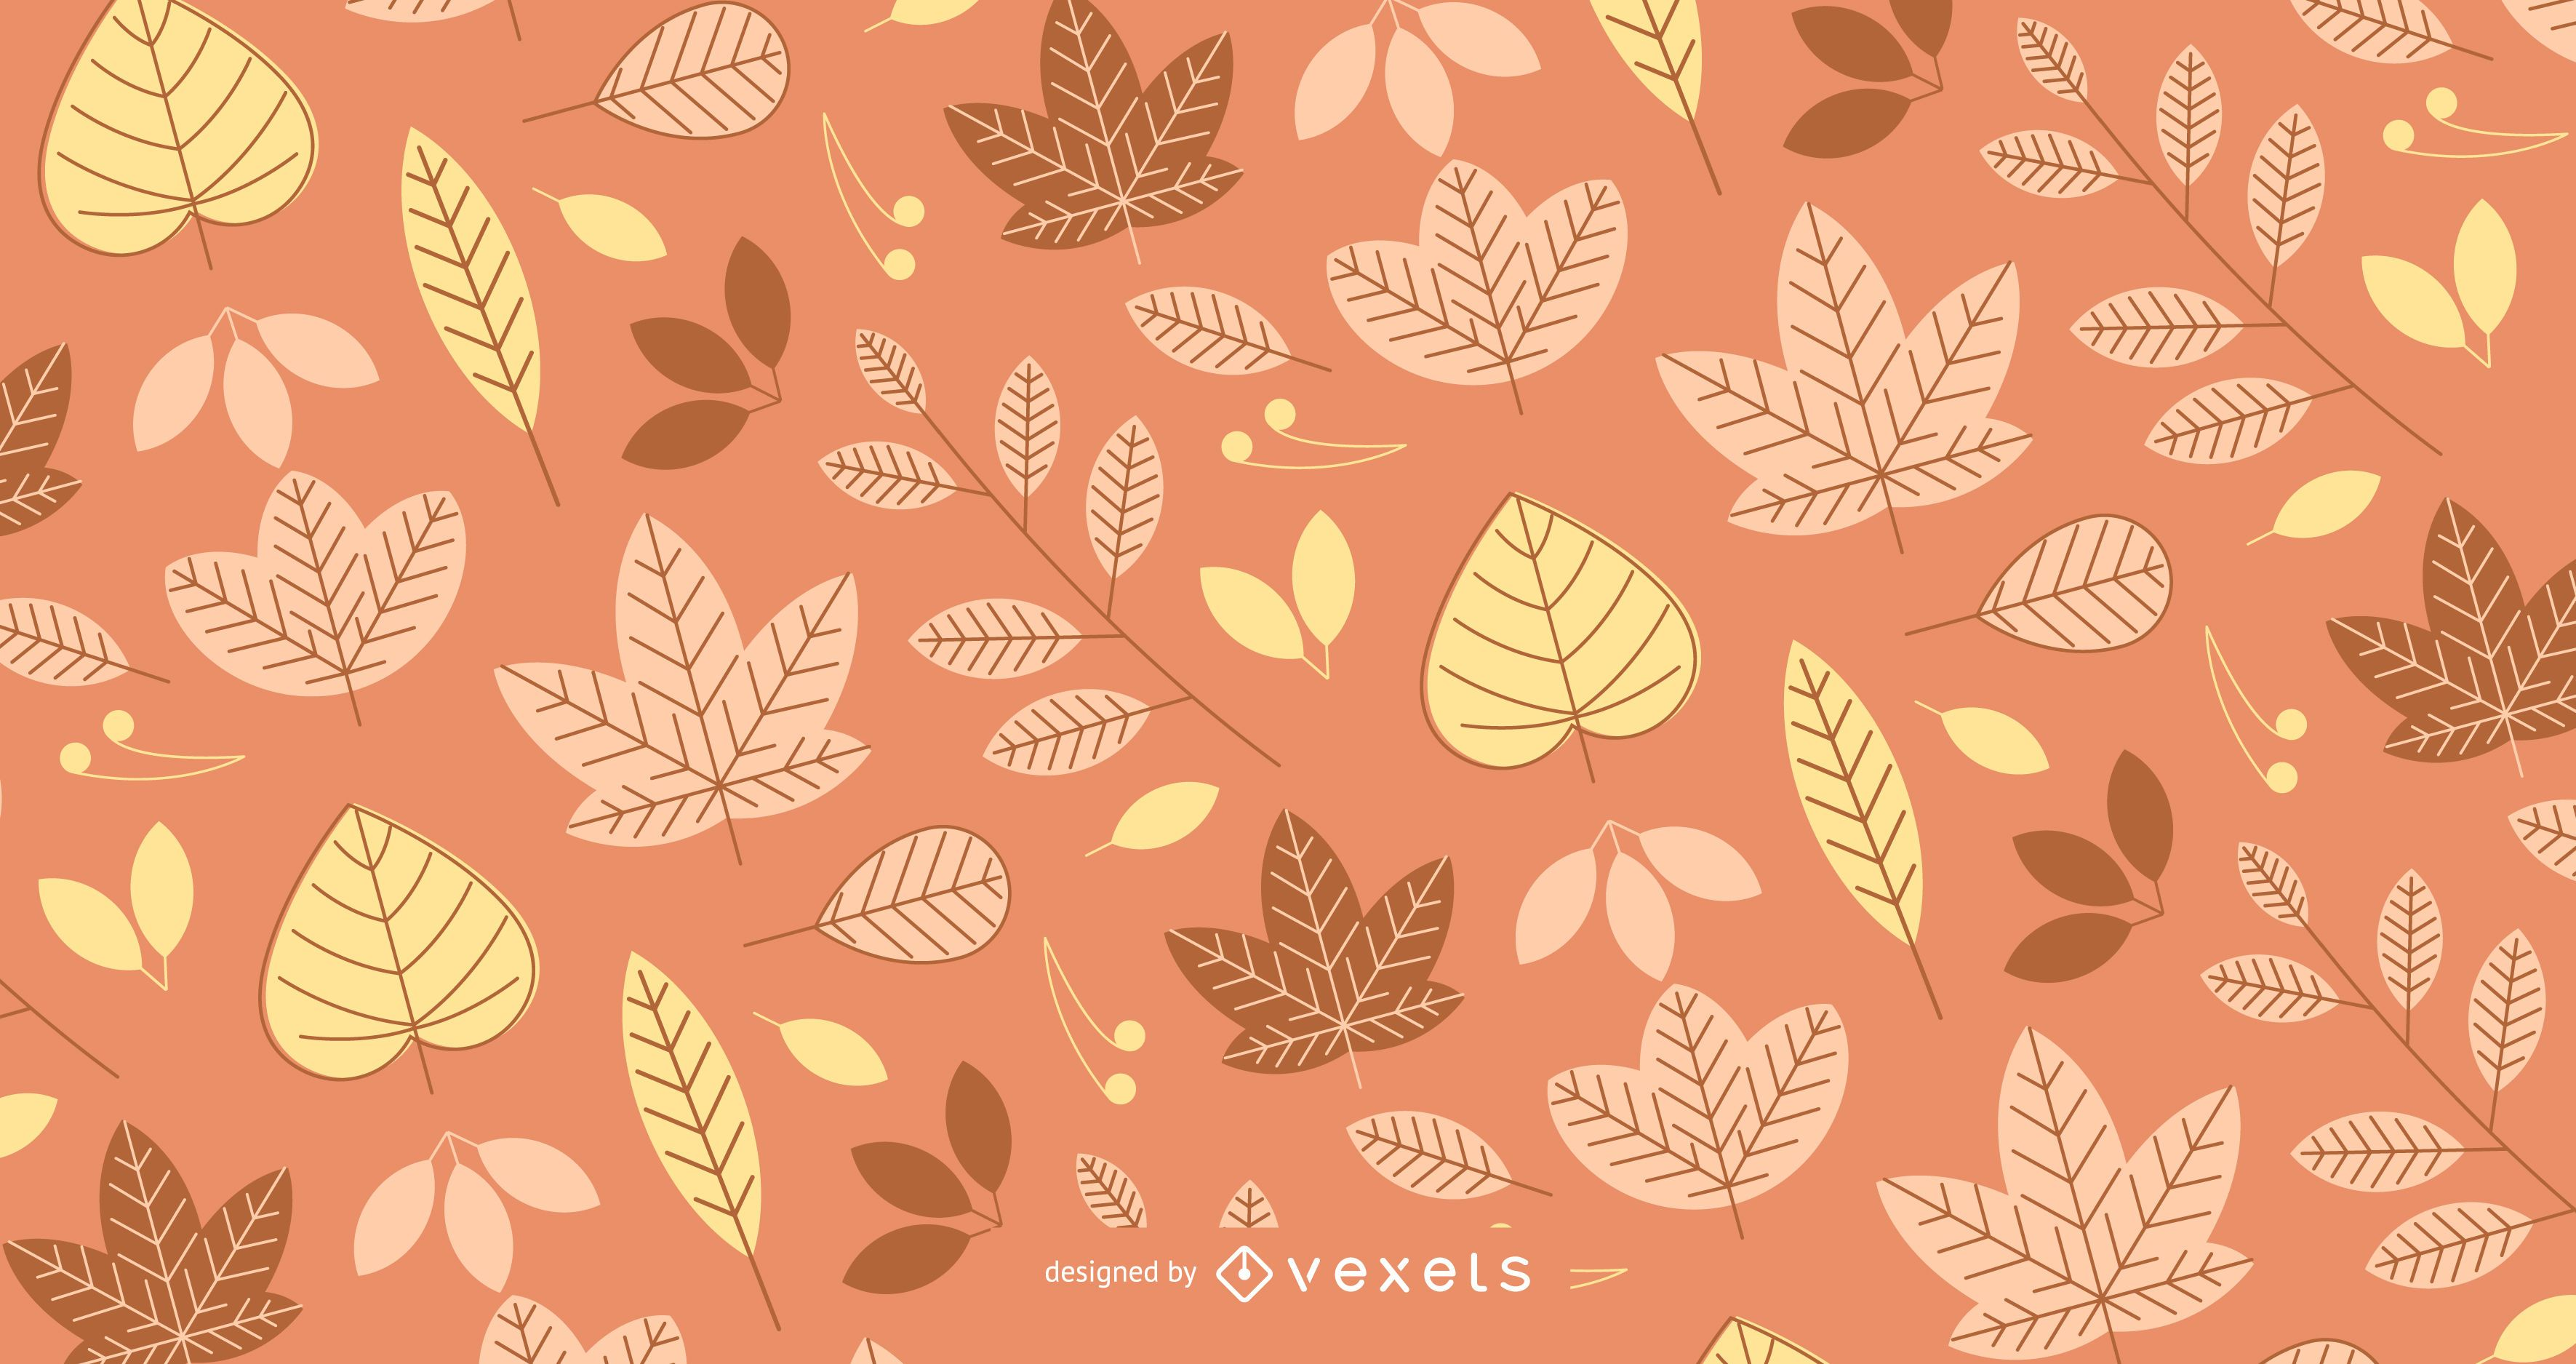 Autumn pattern with illustrated leaves